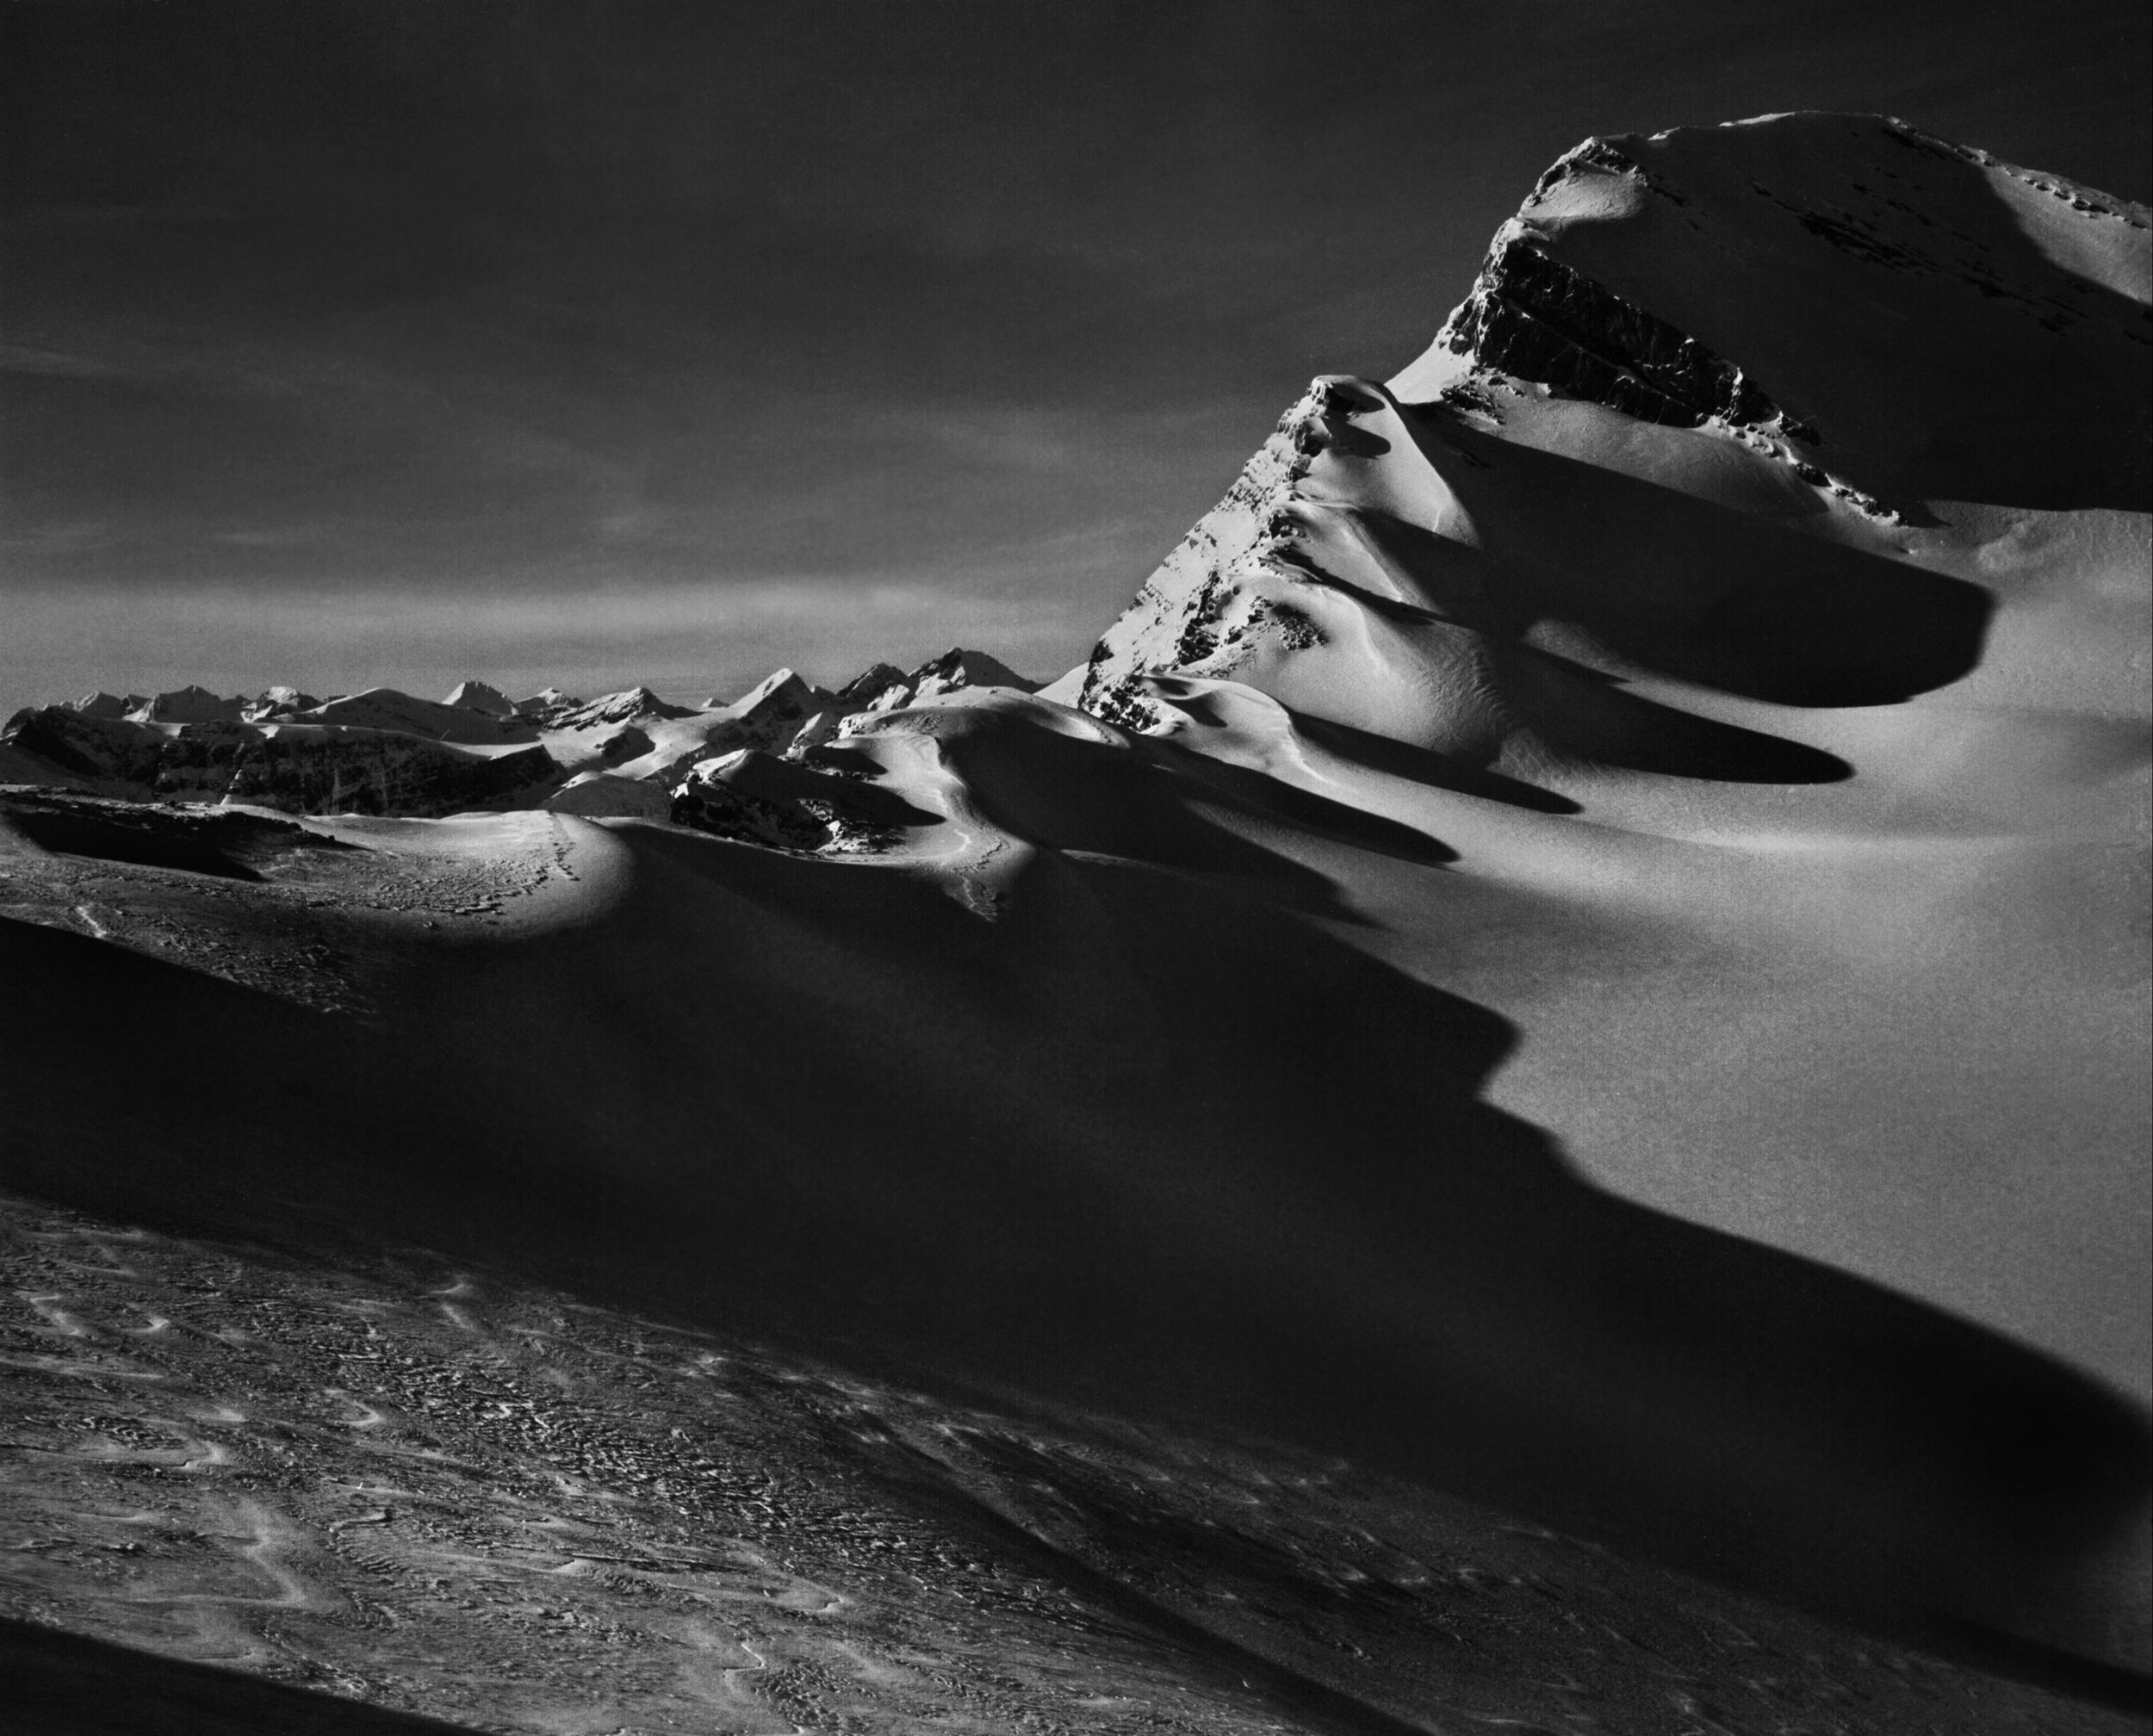 Image: Sebastião Salgado Courtesy The Whyte Museum of the Canadian Rockies